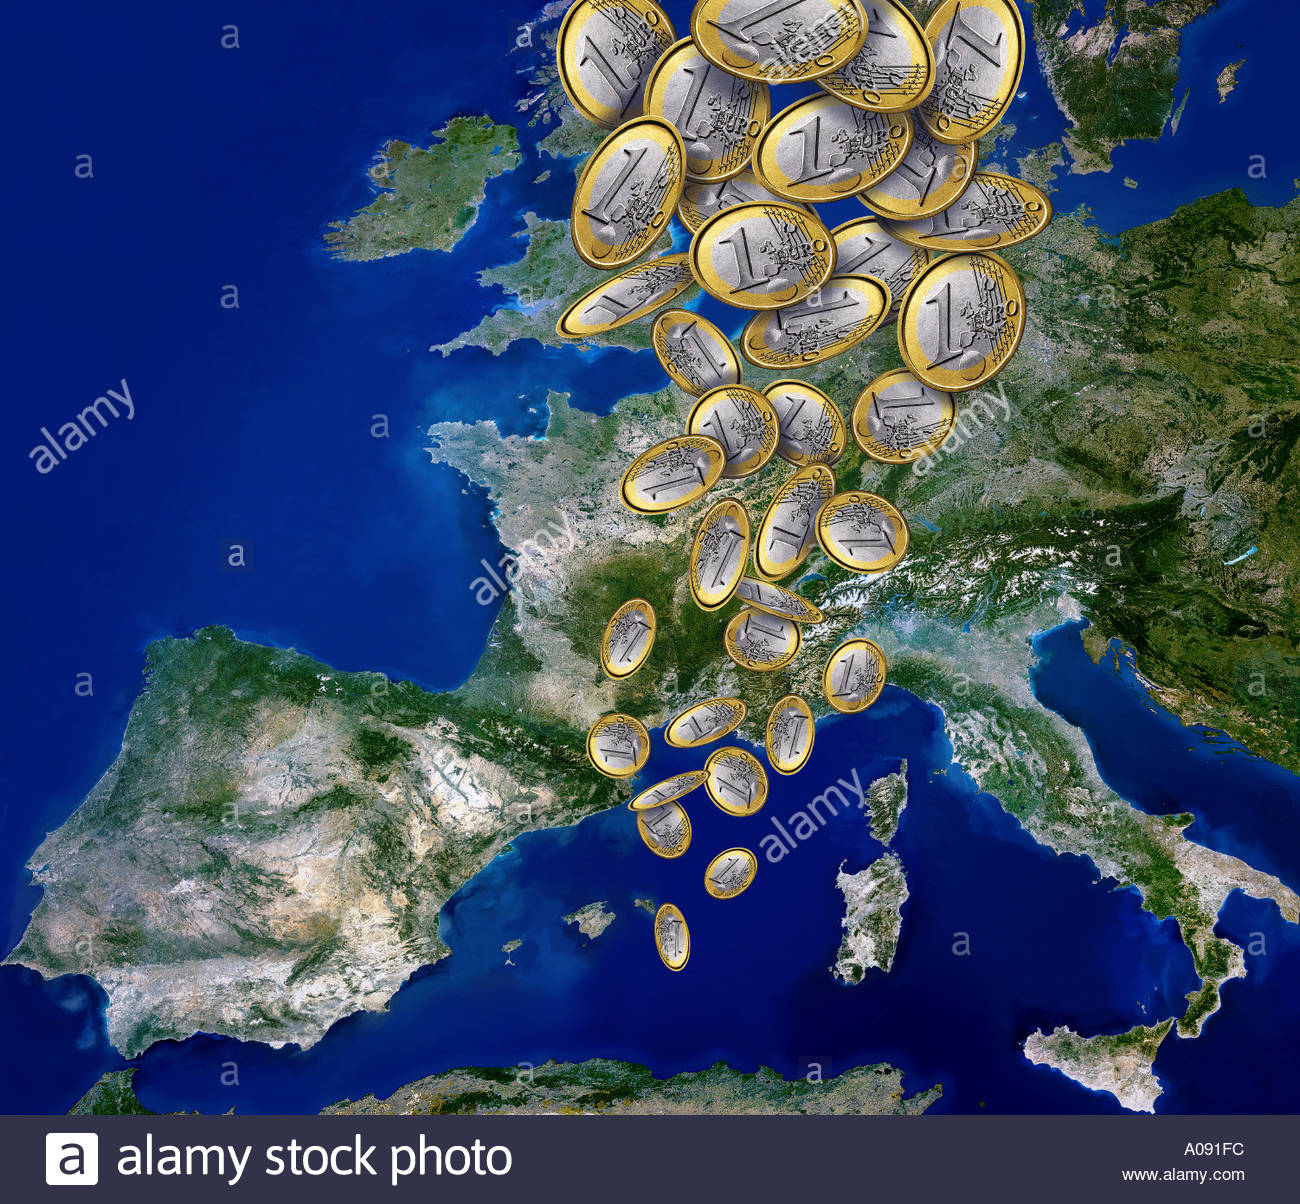 Euro coins falling on to satellite view of Europe - Stock Image